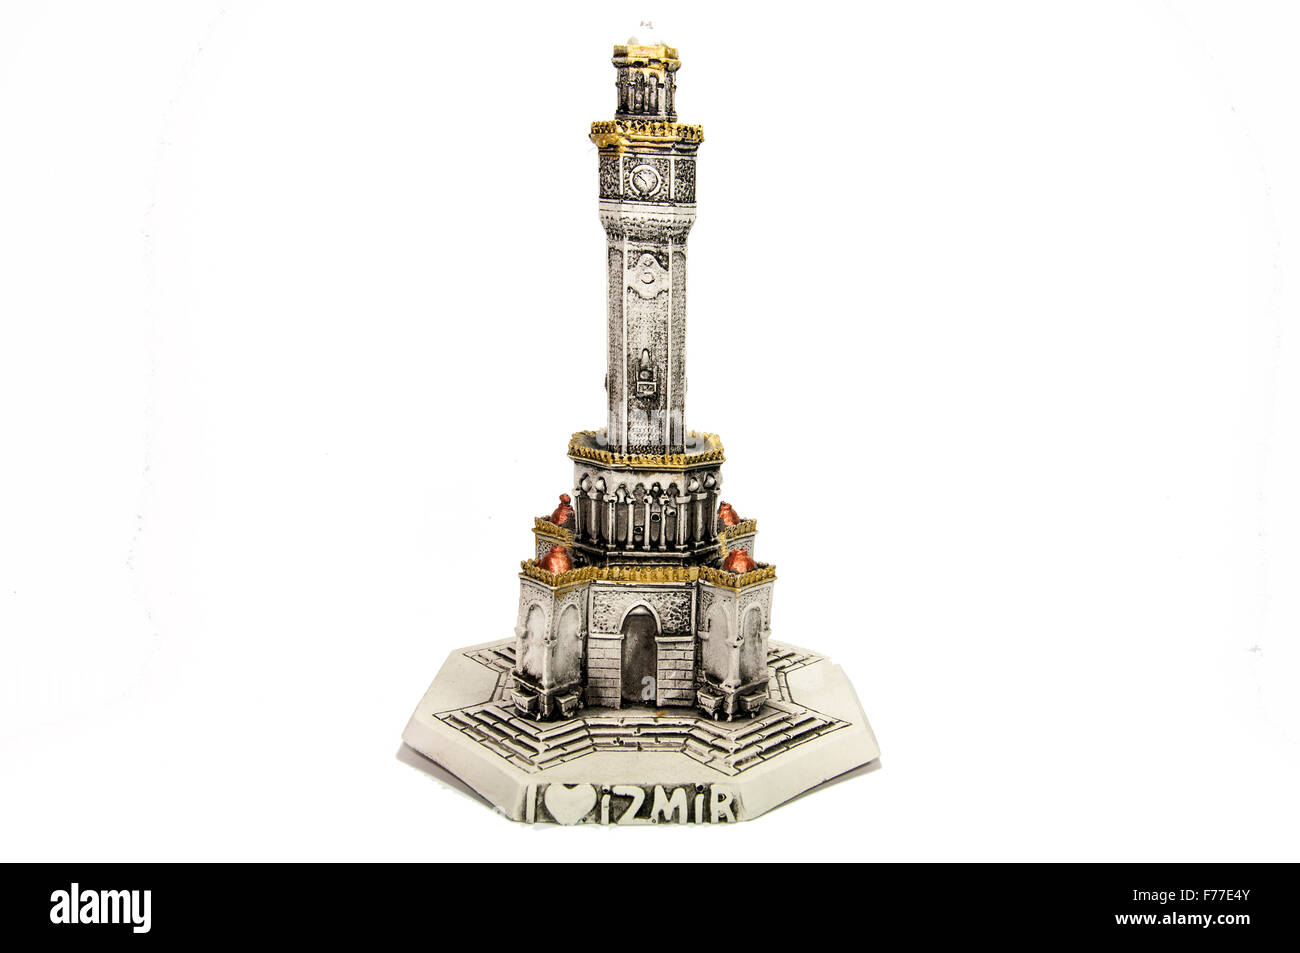 Miniature Model of Izmir Clock Tower by white bacground - Stock Image